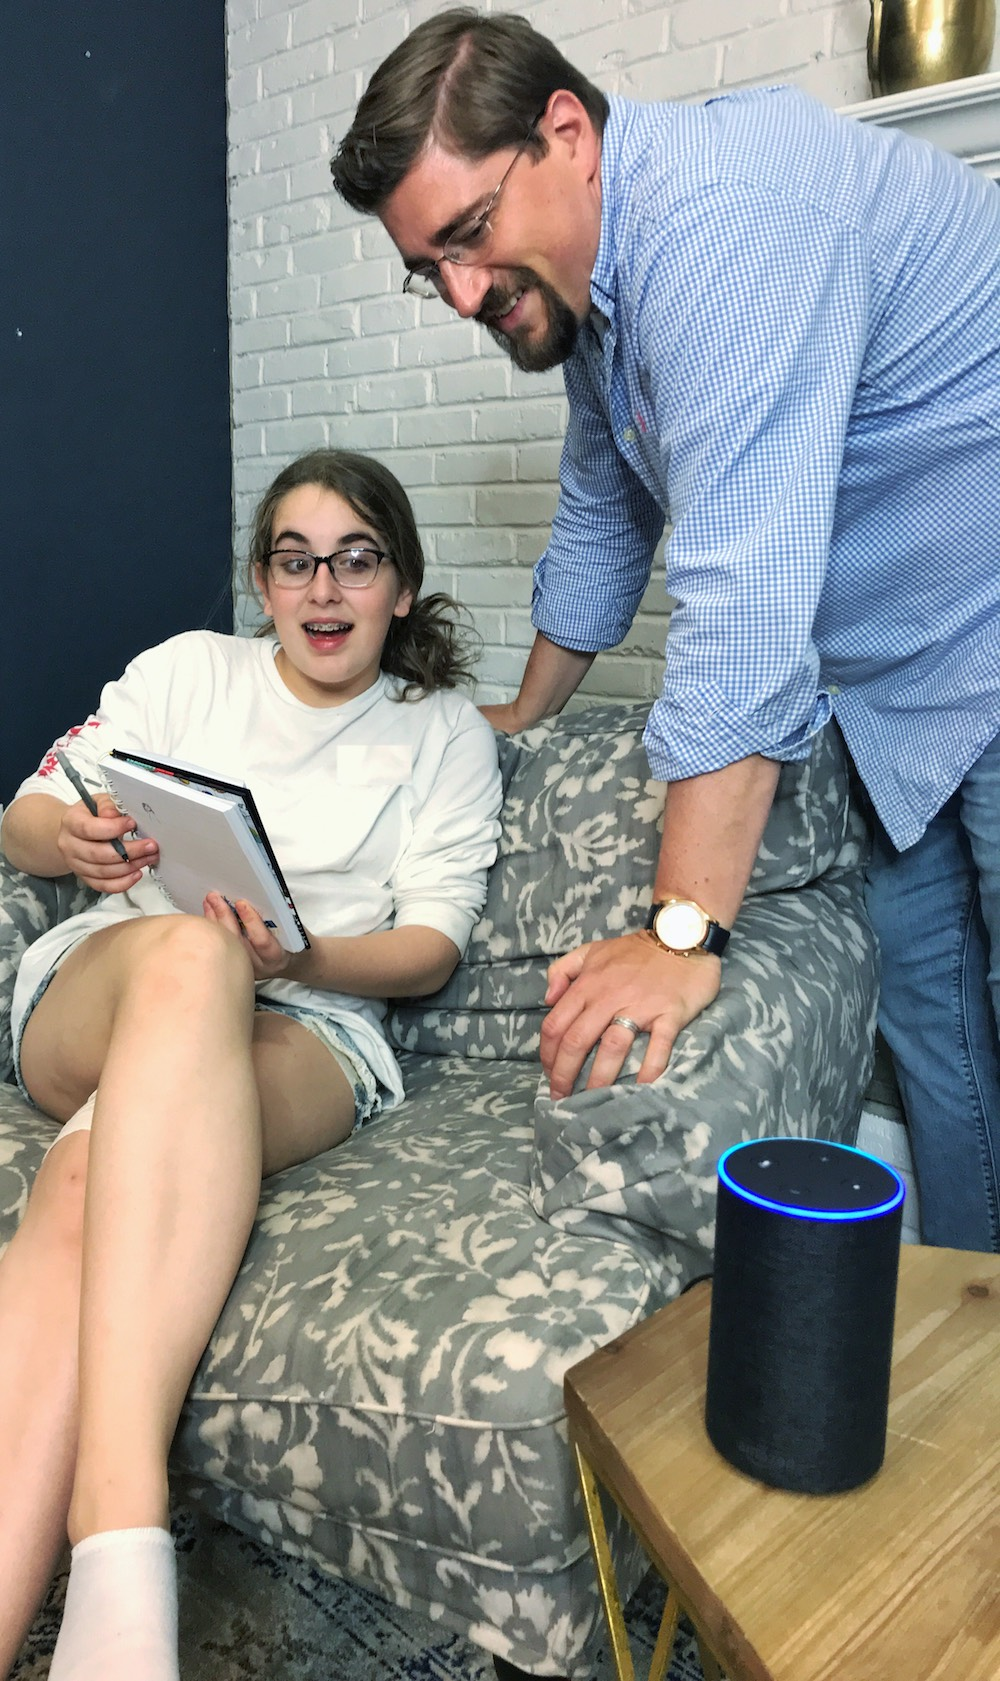 father and teen daughter using amazon echo amazon alexa